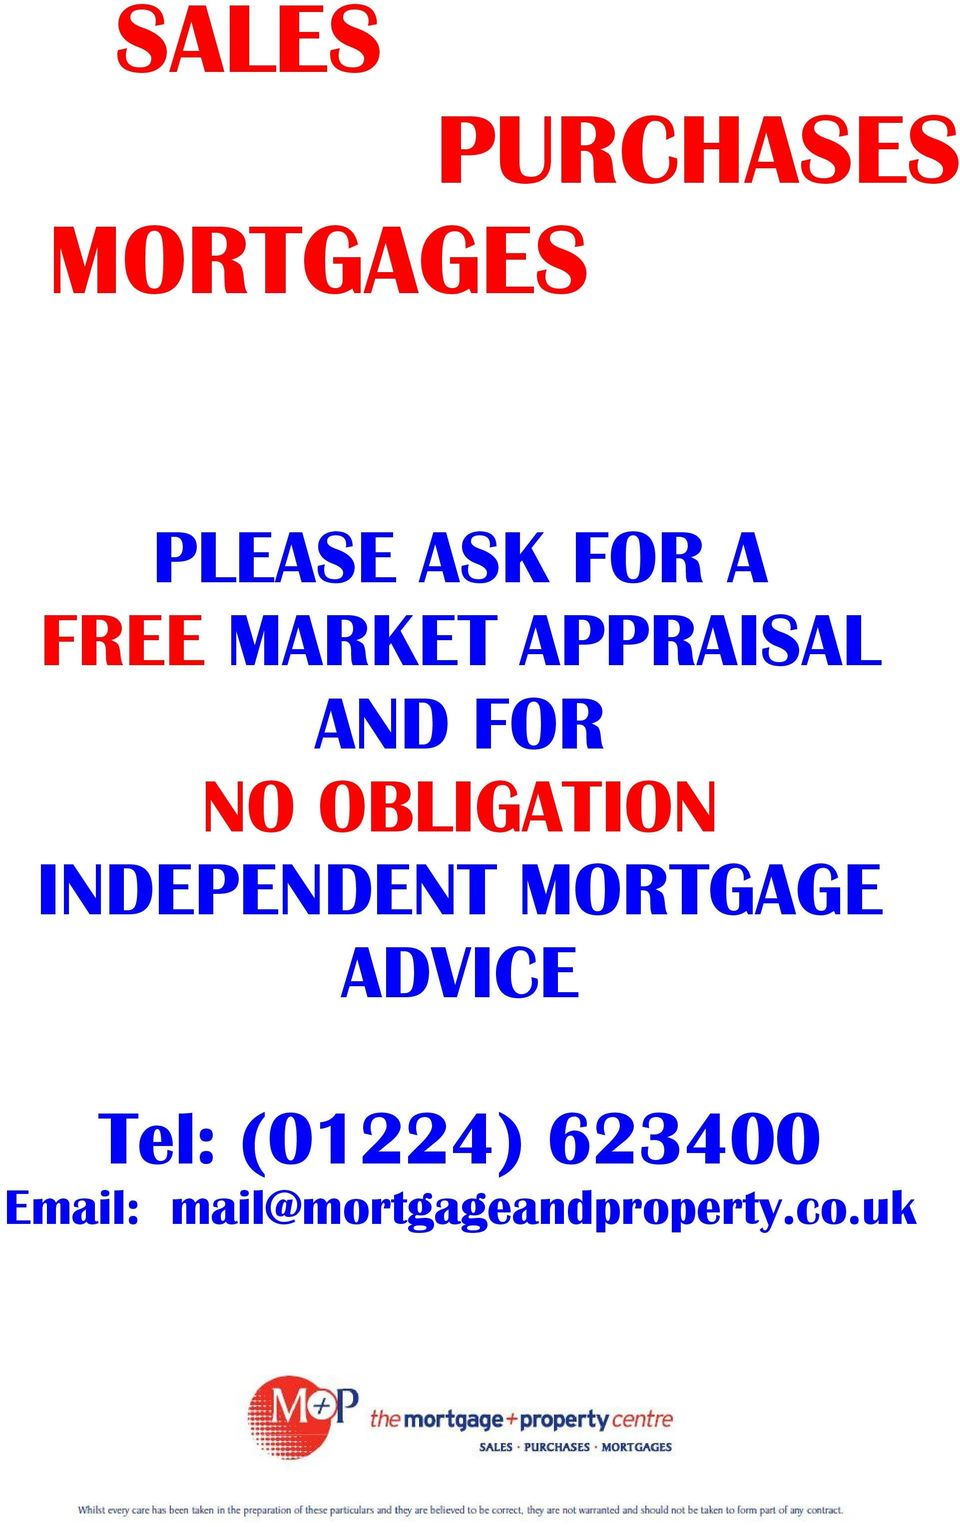 OBLIGATION INDEPENDENT MORTGAGE ADVICE